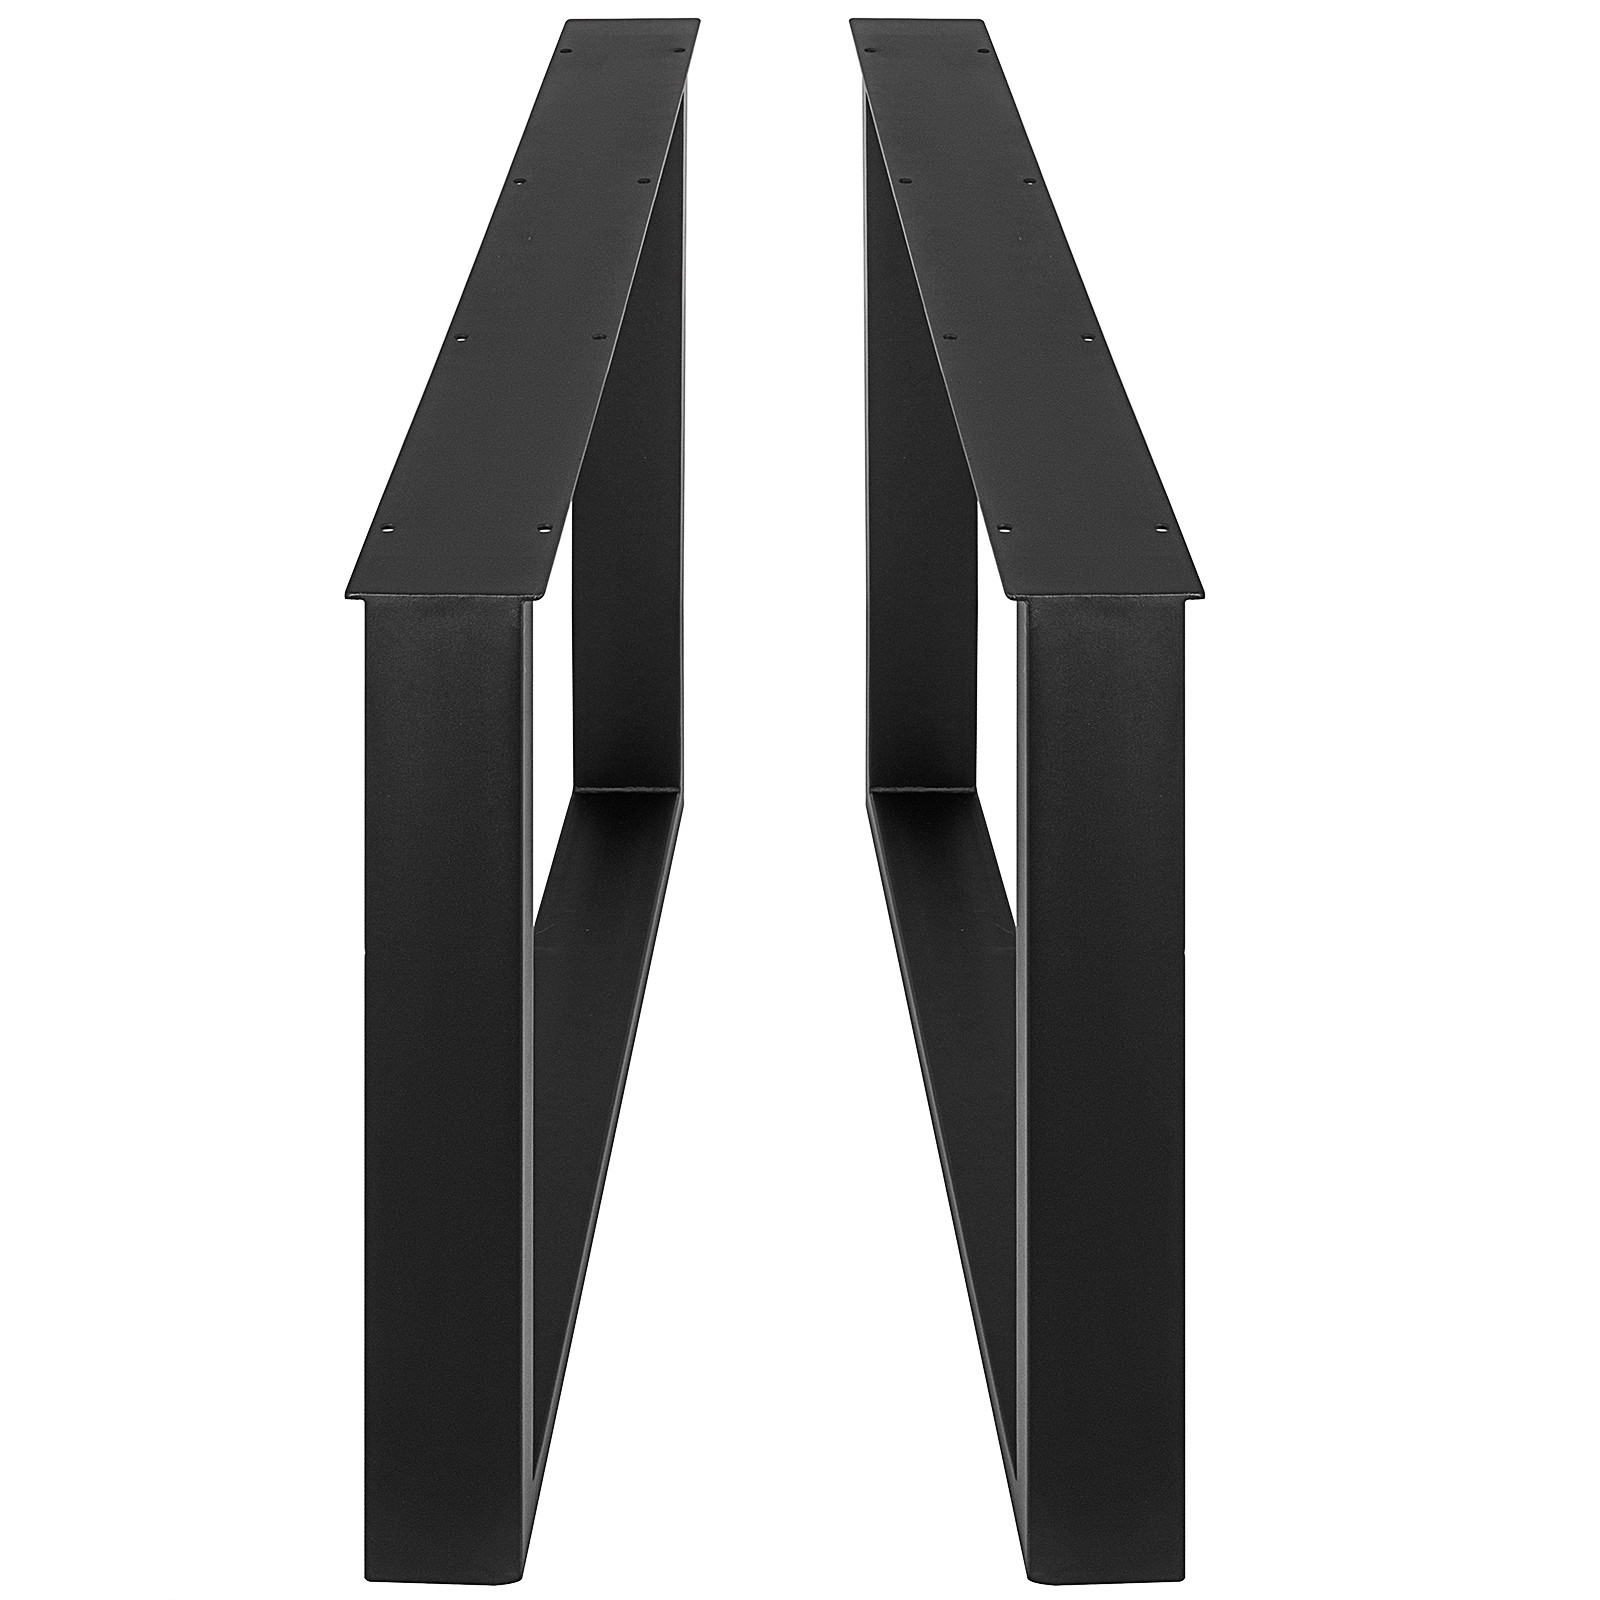 2X-Table-Legs-Black-Dining-Table-Leg-Heavy-Duty-Computer-Desk-Legs-Rectangle thumbnail 65